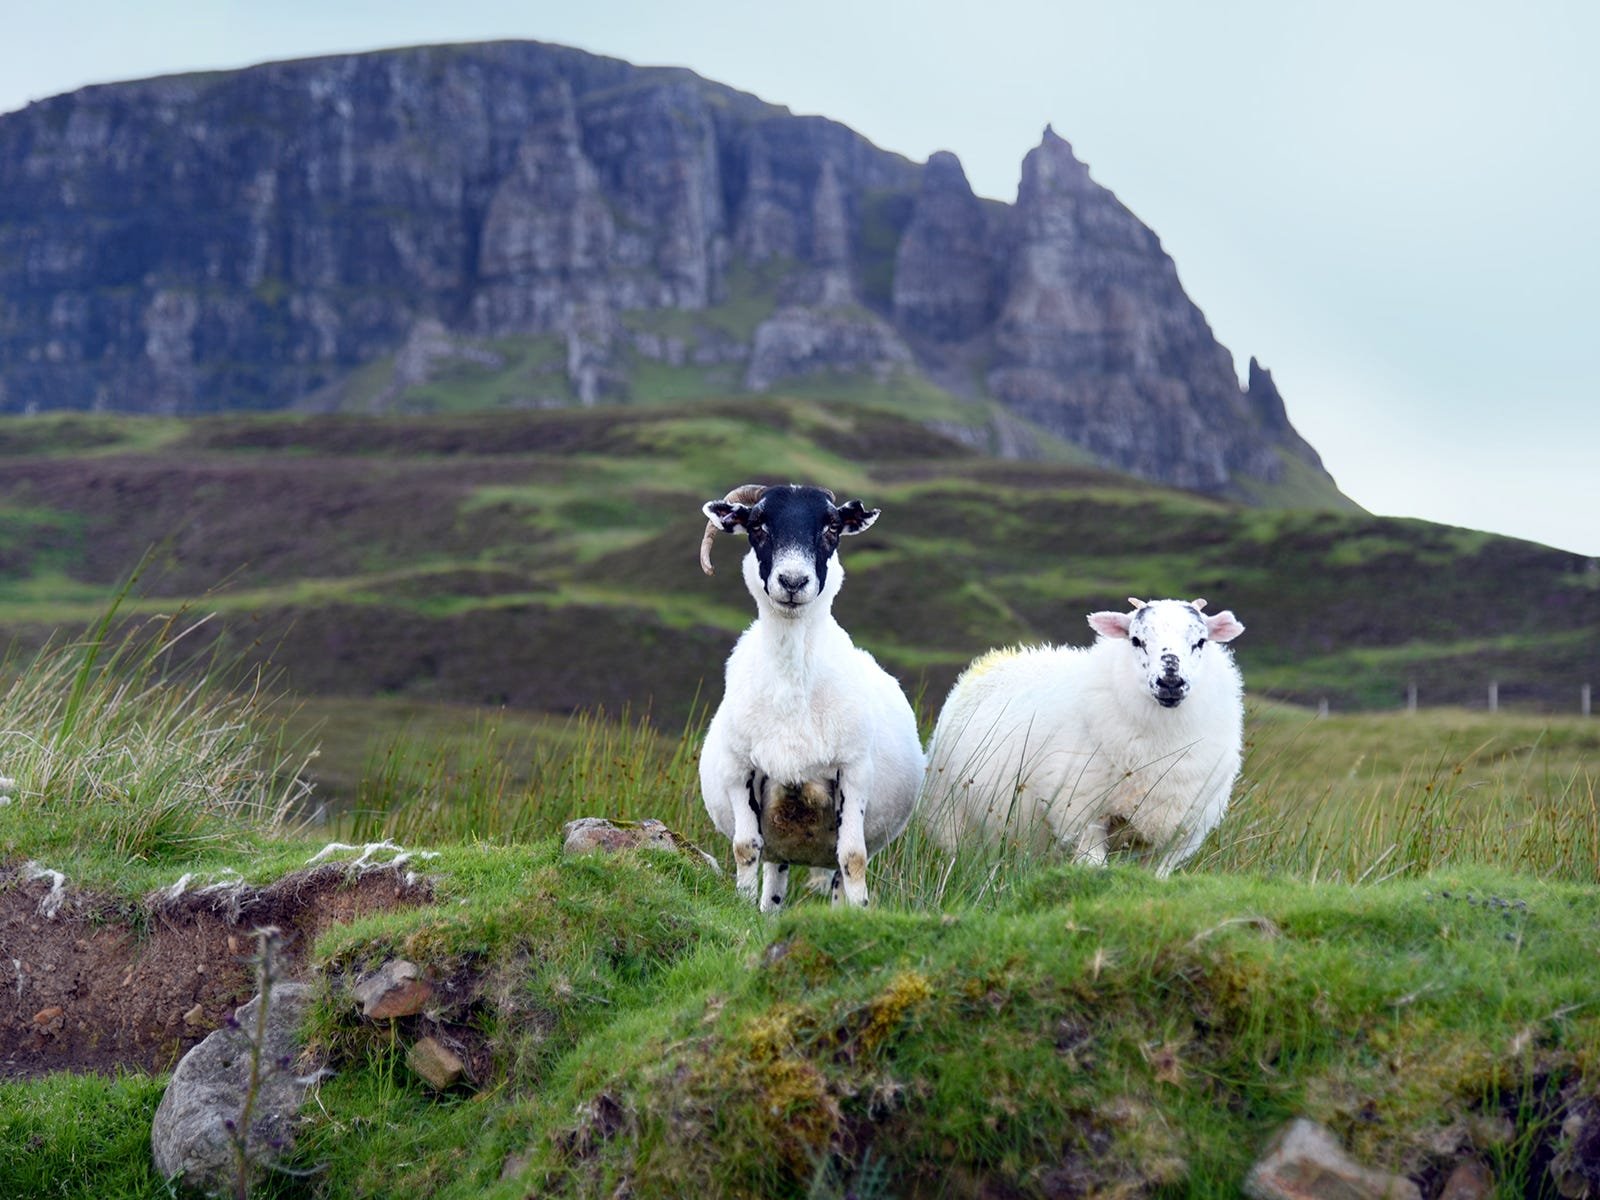 As you drive around the Trotternish Peninsula on the Isle of Skye, you may encounter more sheep than people.